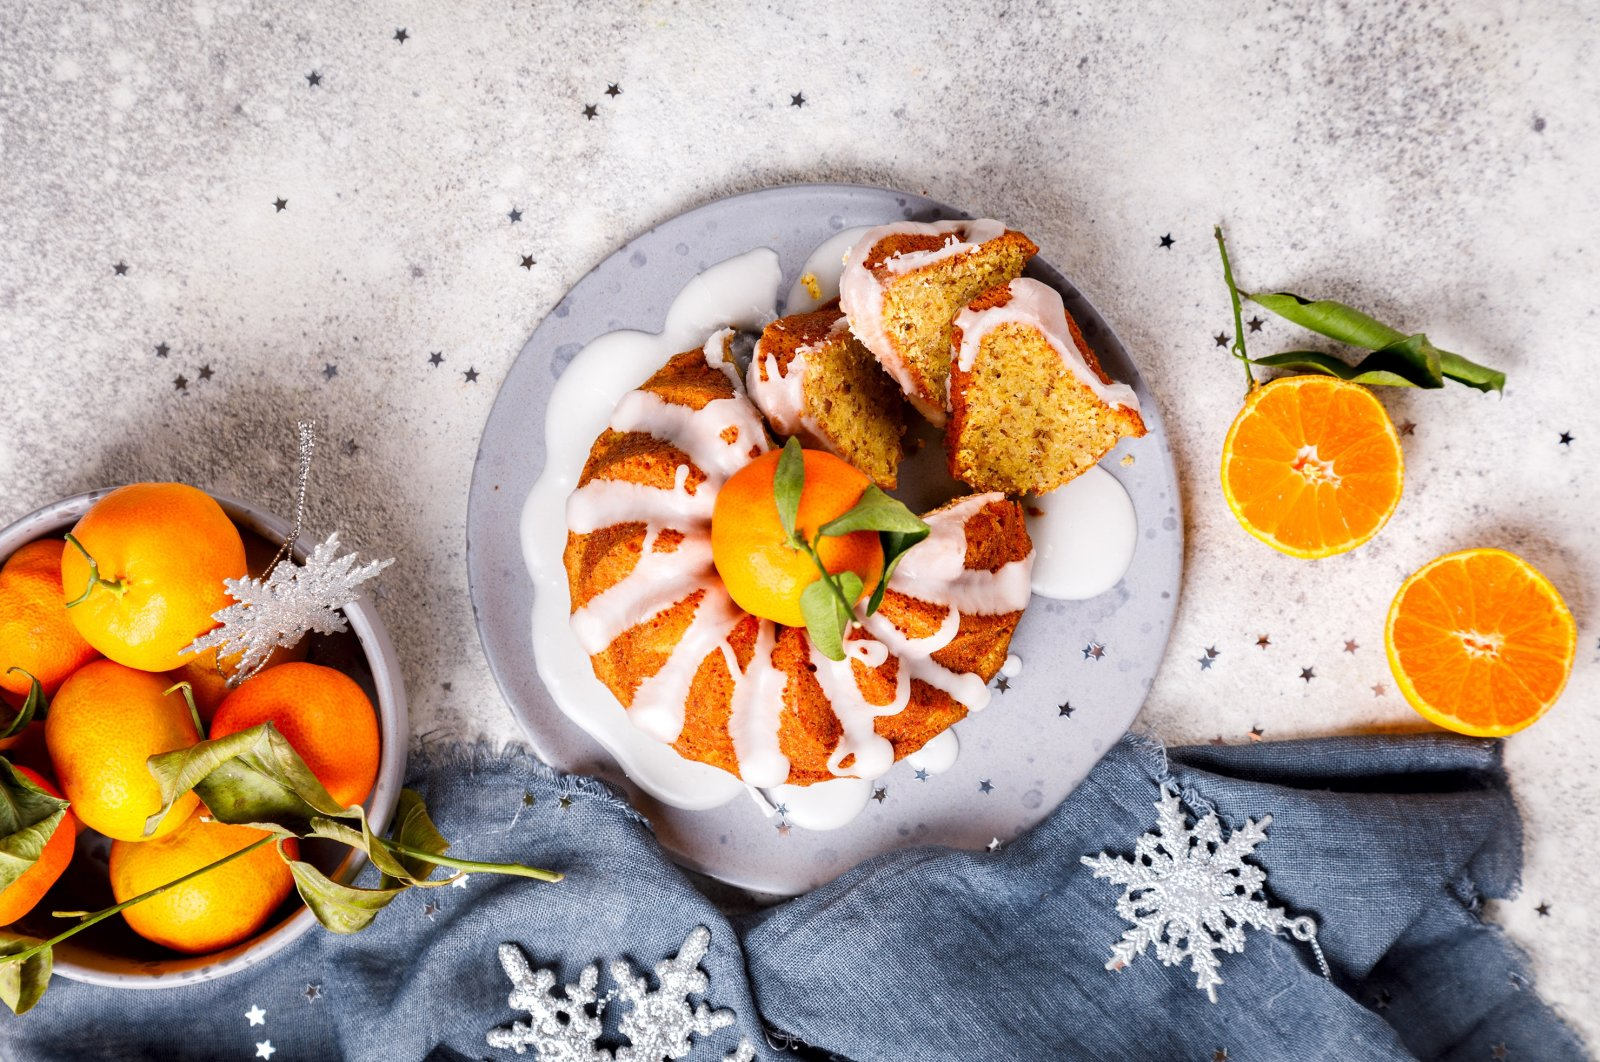 The best way to use mandarins is to bake them into cakes or squeeze their juices for mandarin-infused dishes.(Shutterstock Photo)